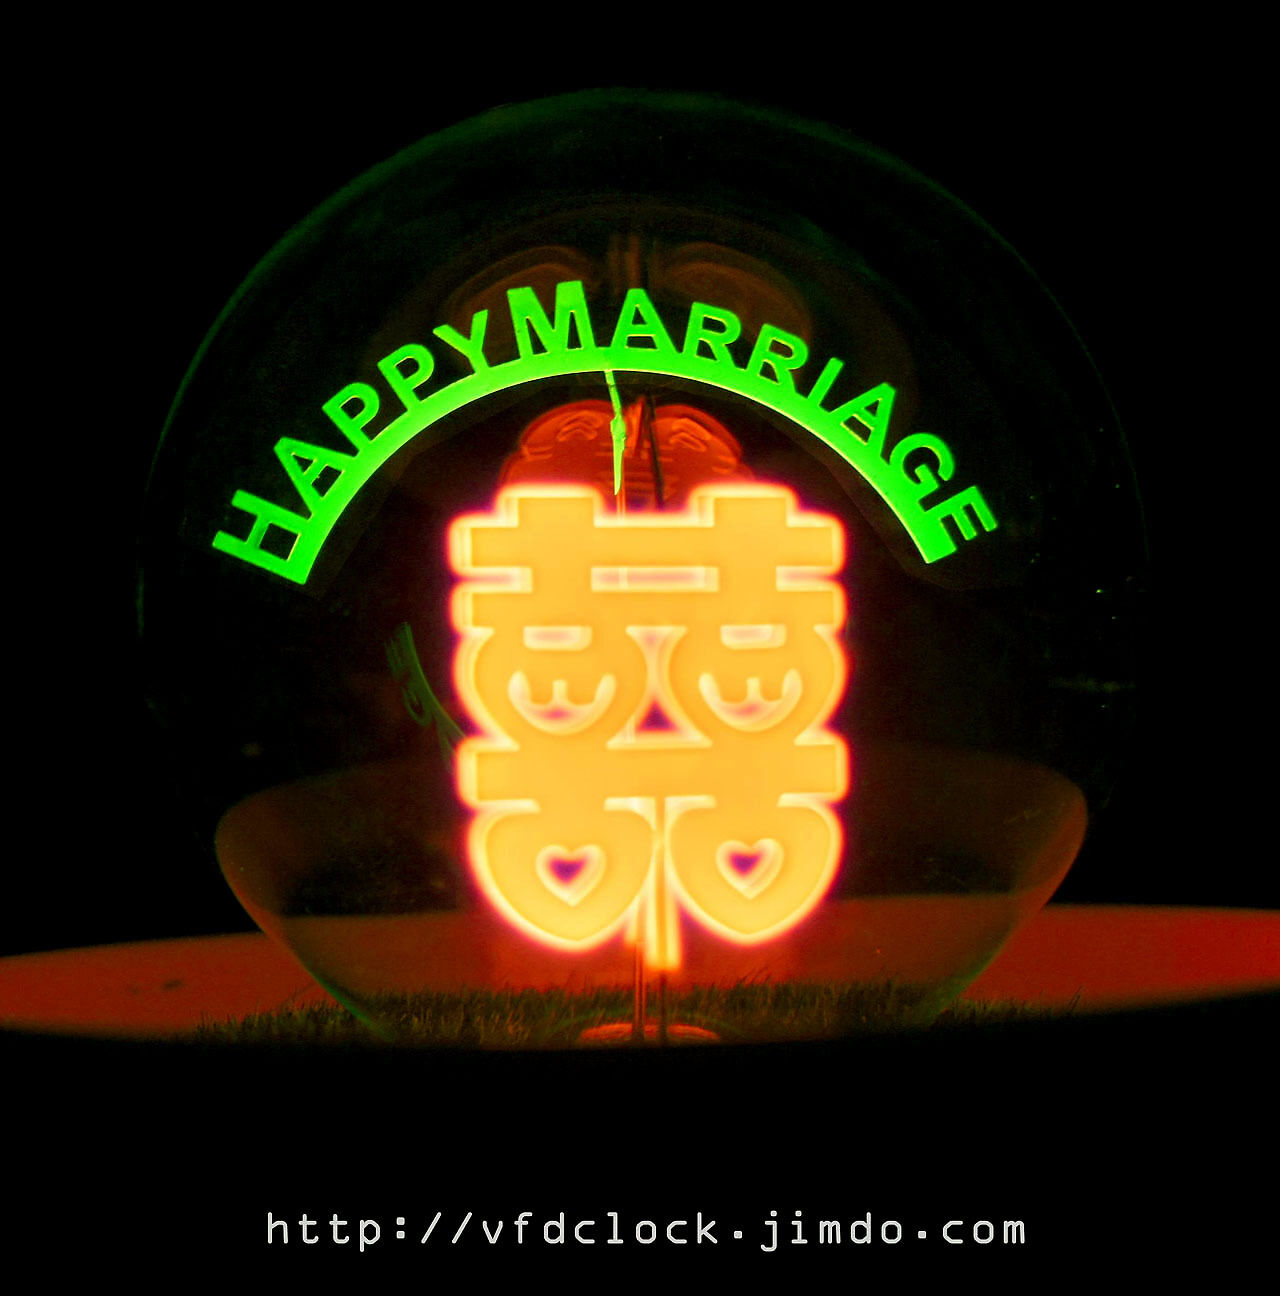 Neon Light Bulbs >> Details About Happy Marriage Artful Gas Discharge Neon Light Bulb Glow Lamp Nixie Bulb Tube